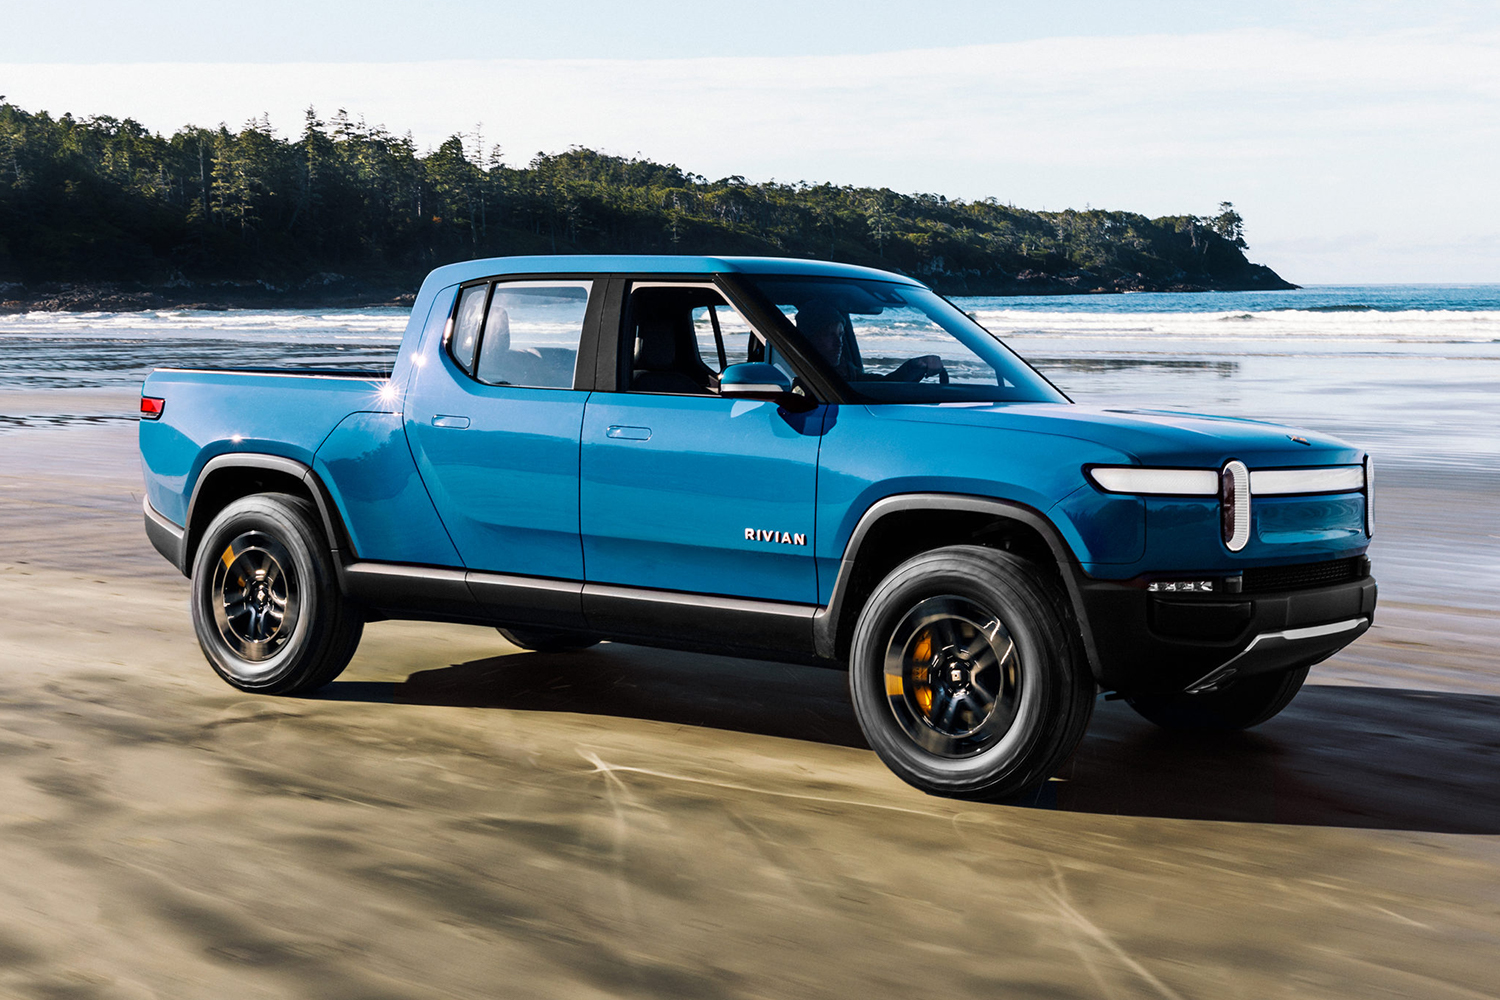 The Rivian R1T electric truck driving on the beach